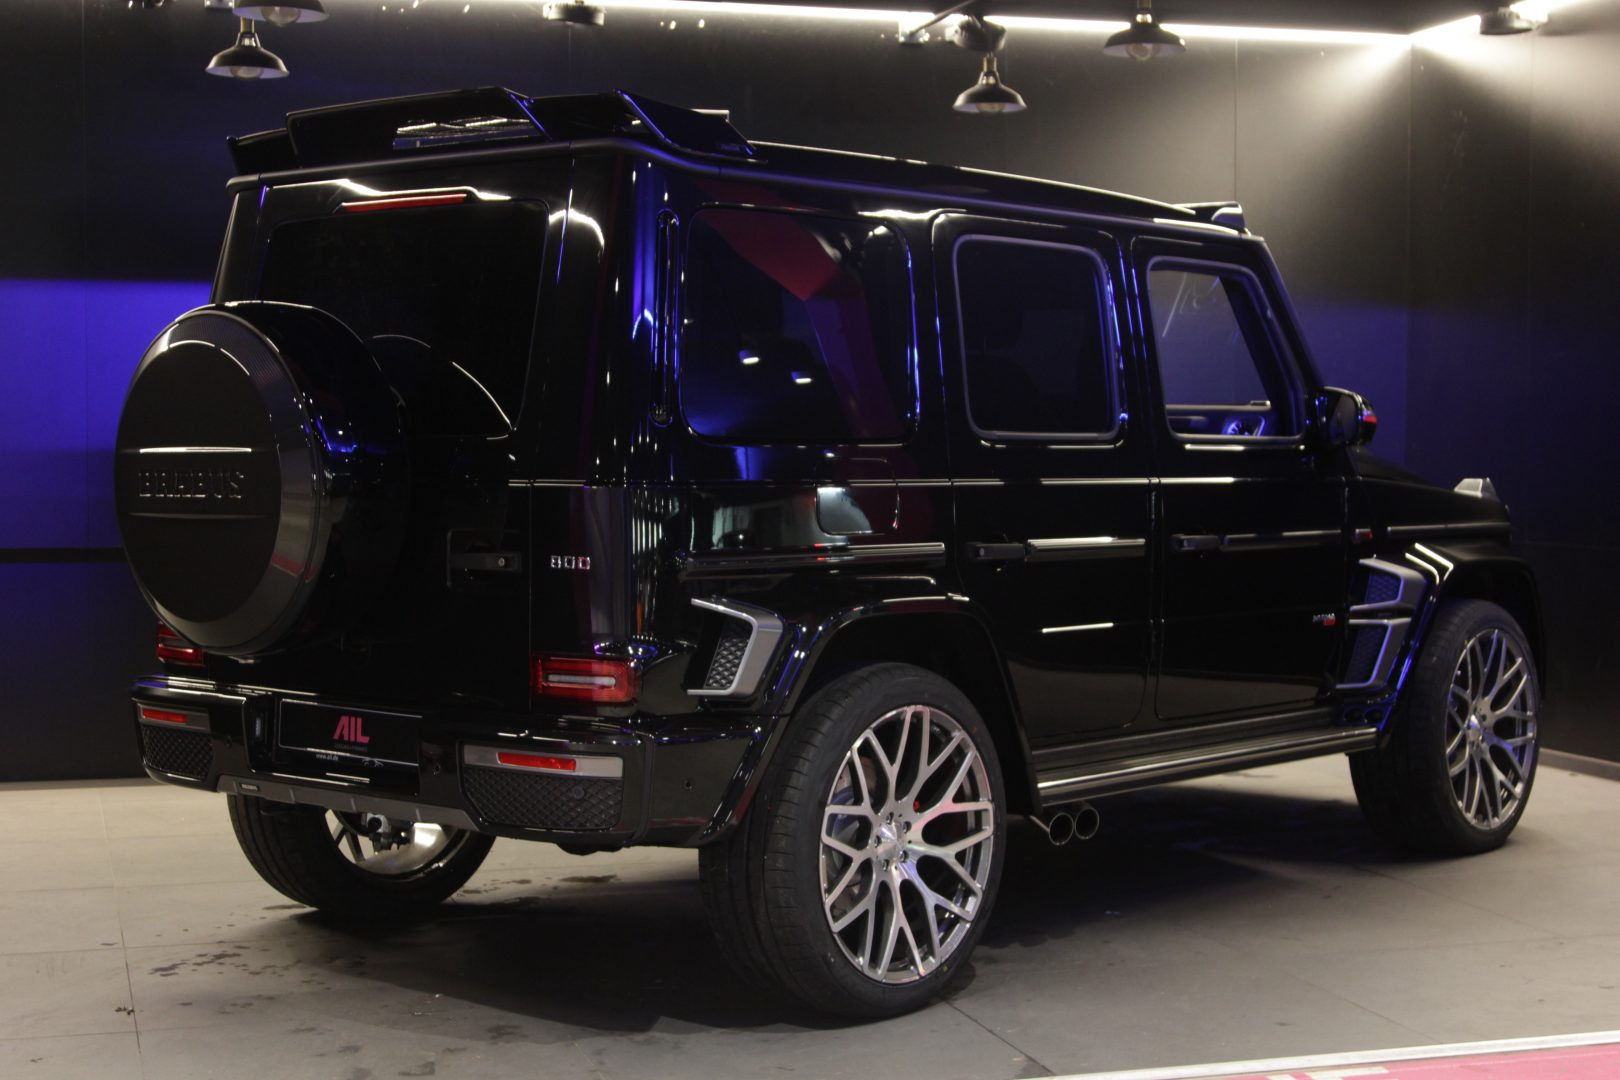 AIL Mercedes-Benz G63 Edition1 BRABUS 800 3